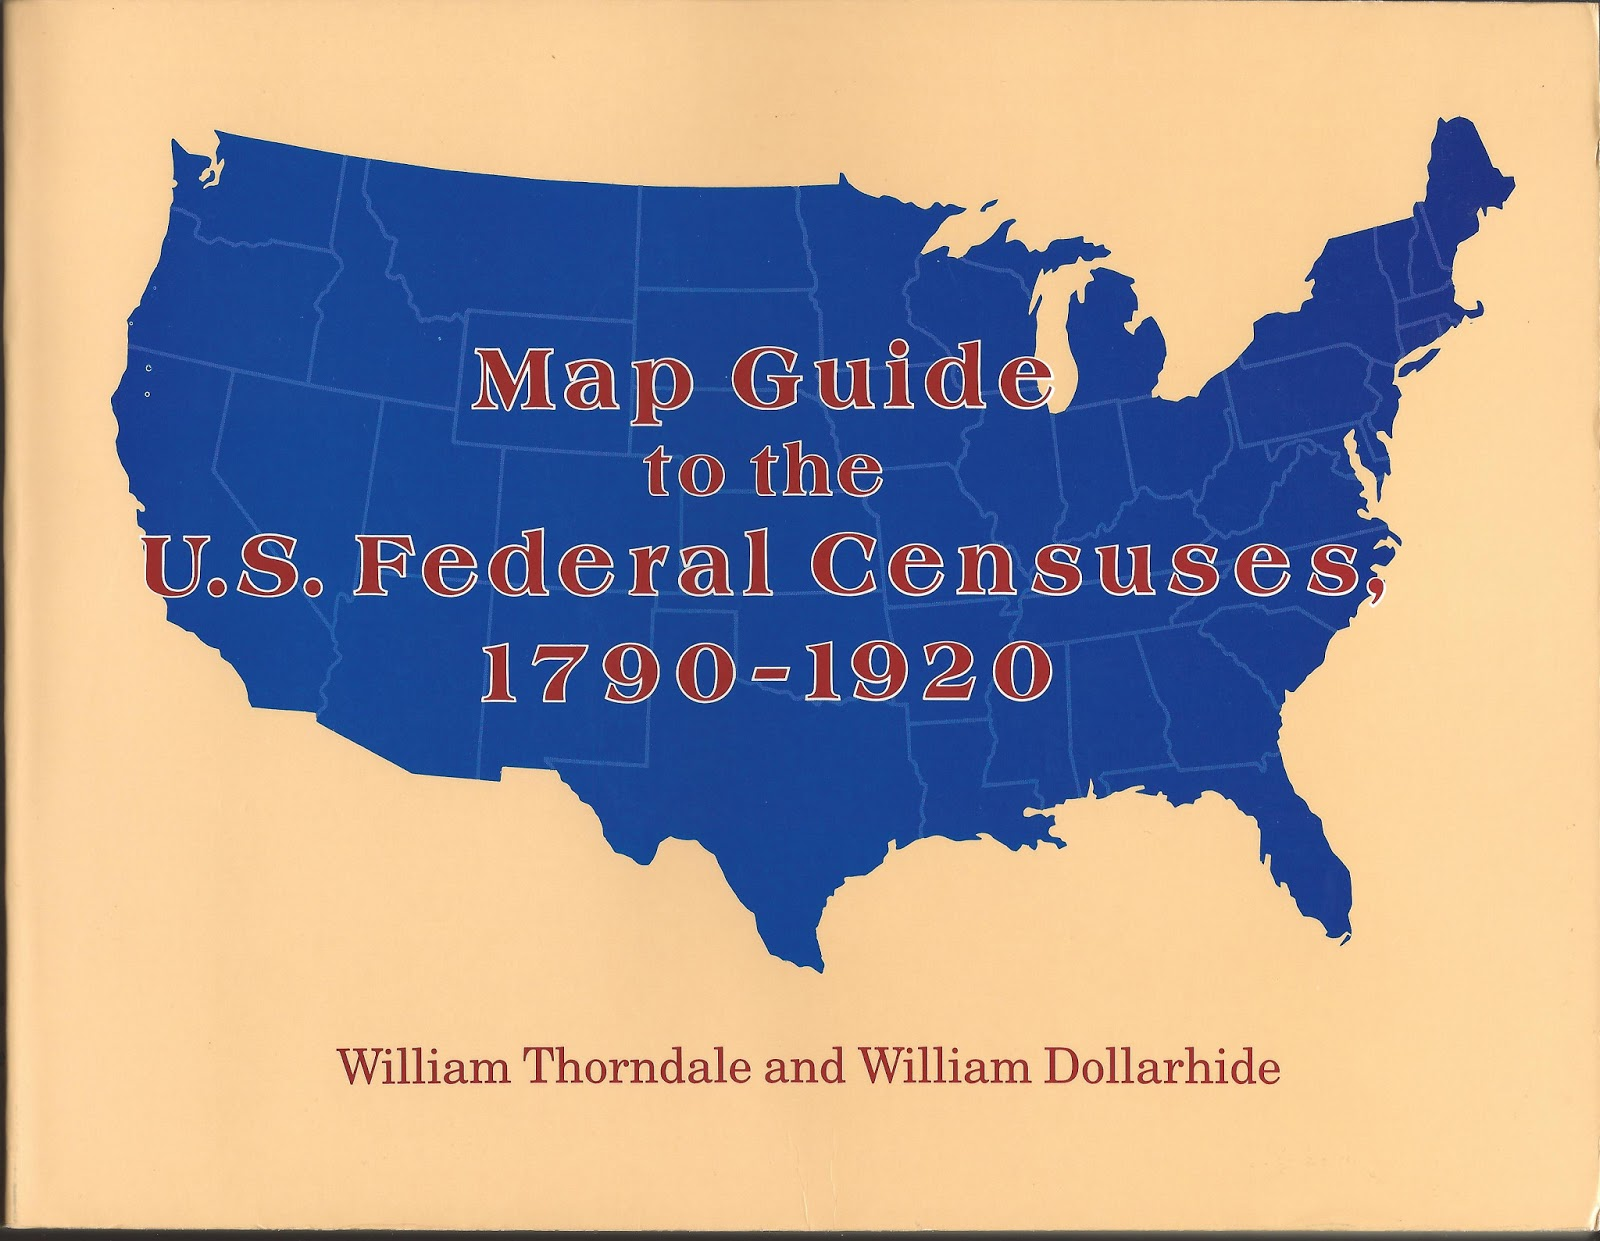 map guide to the u s federal census